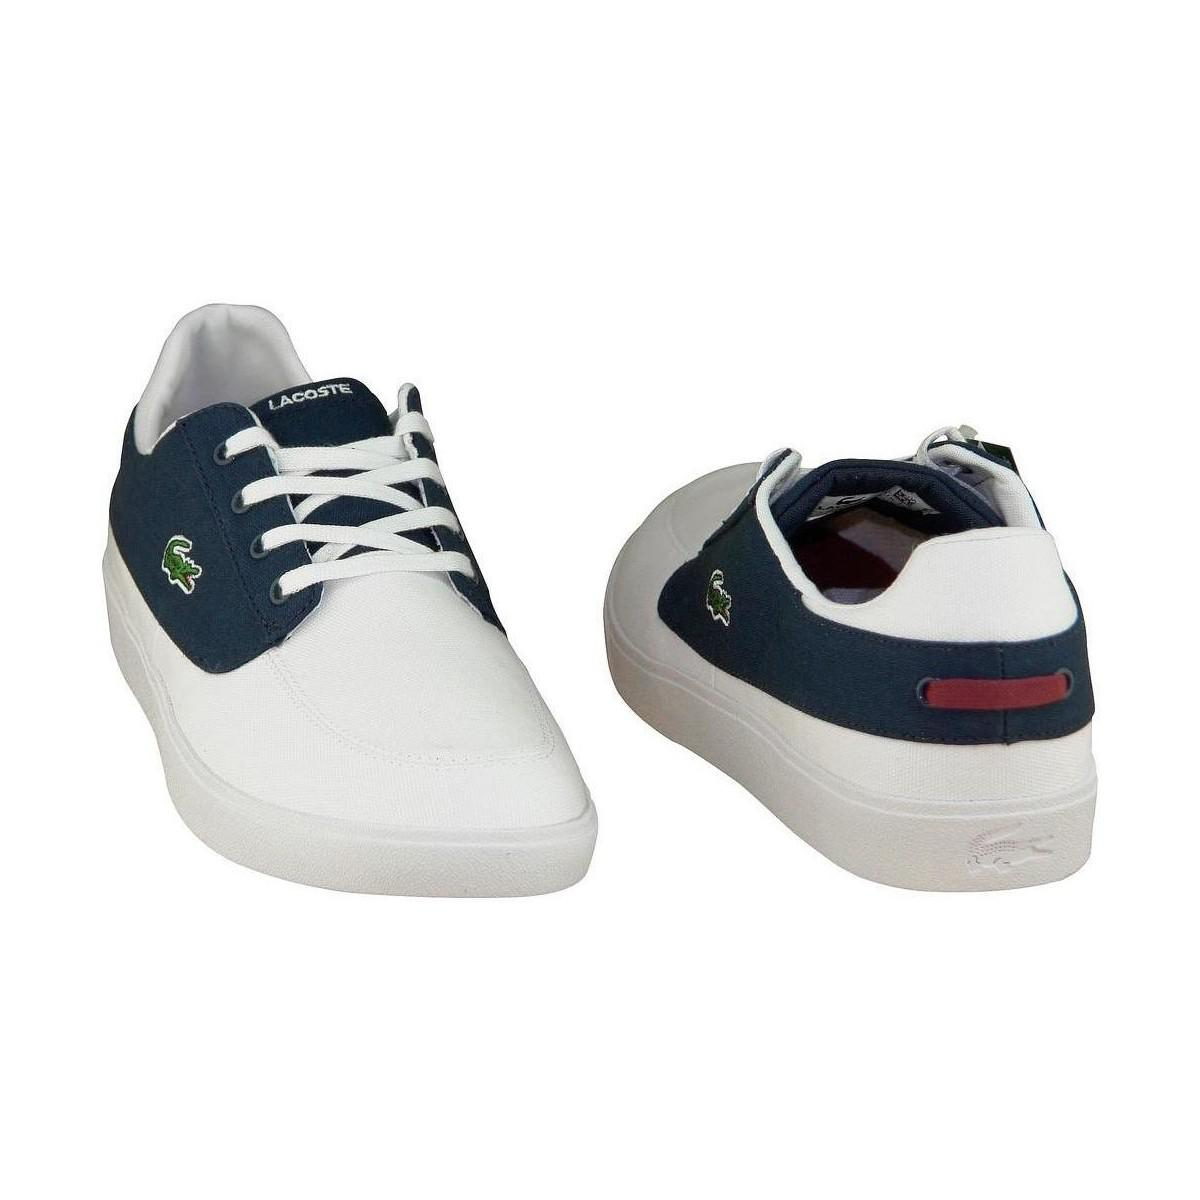 ccf806c37260a Men s Men In Lacoste Shoes For White Boat Ramer trainers S8xqwEAx